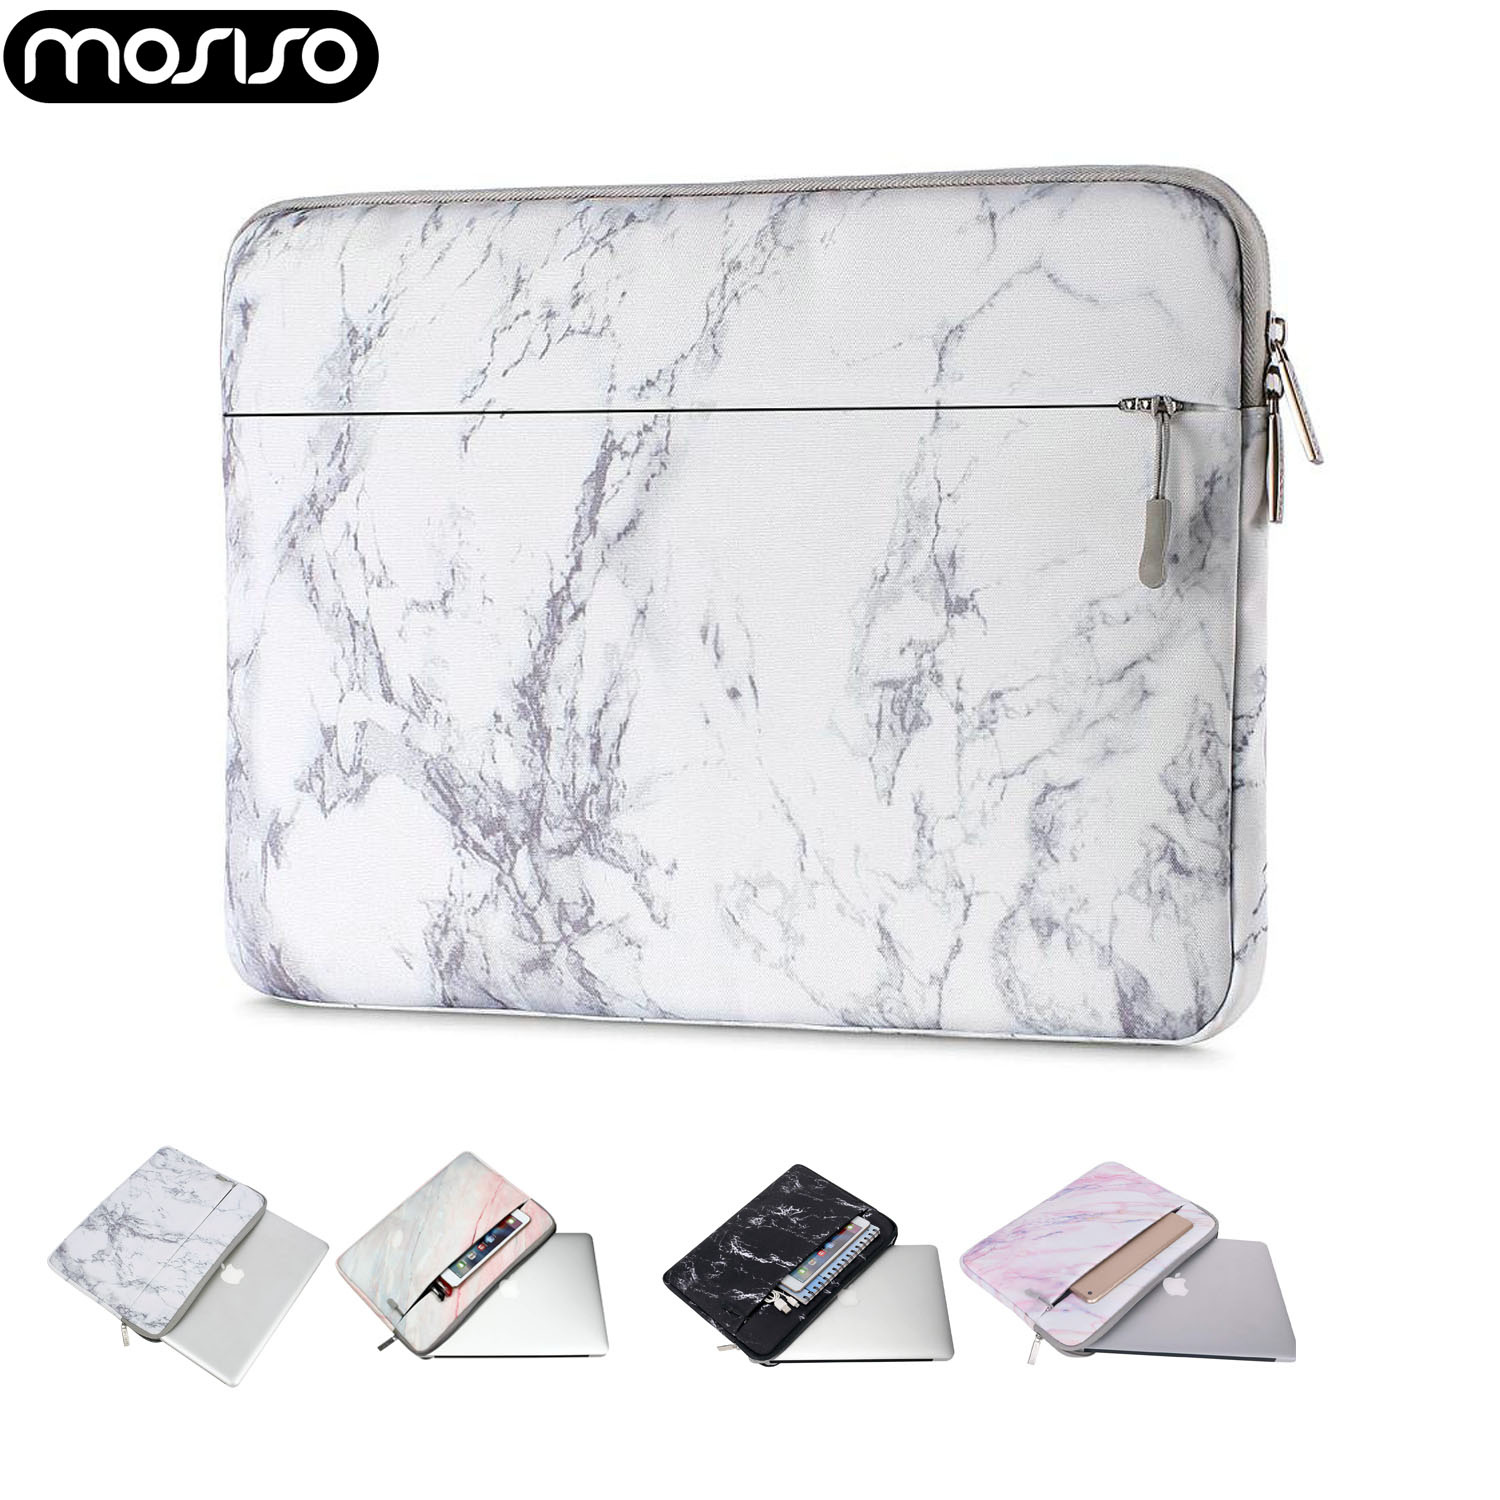 MOSISO Fashion Laptop Sleeve Bag For Xiaomi Macbook Pro 13 Case Air 11 12 2018 2019 New 13 15 Touch Bar Notebook Soft Cover Case